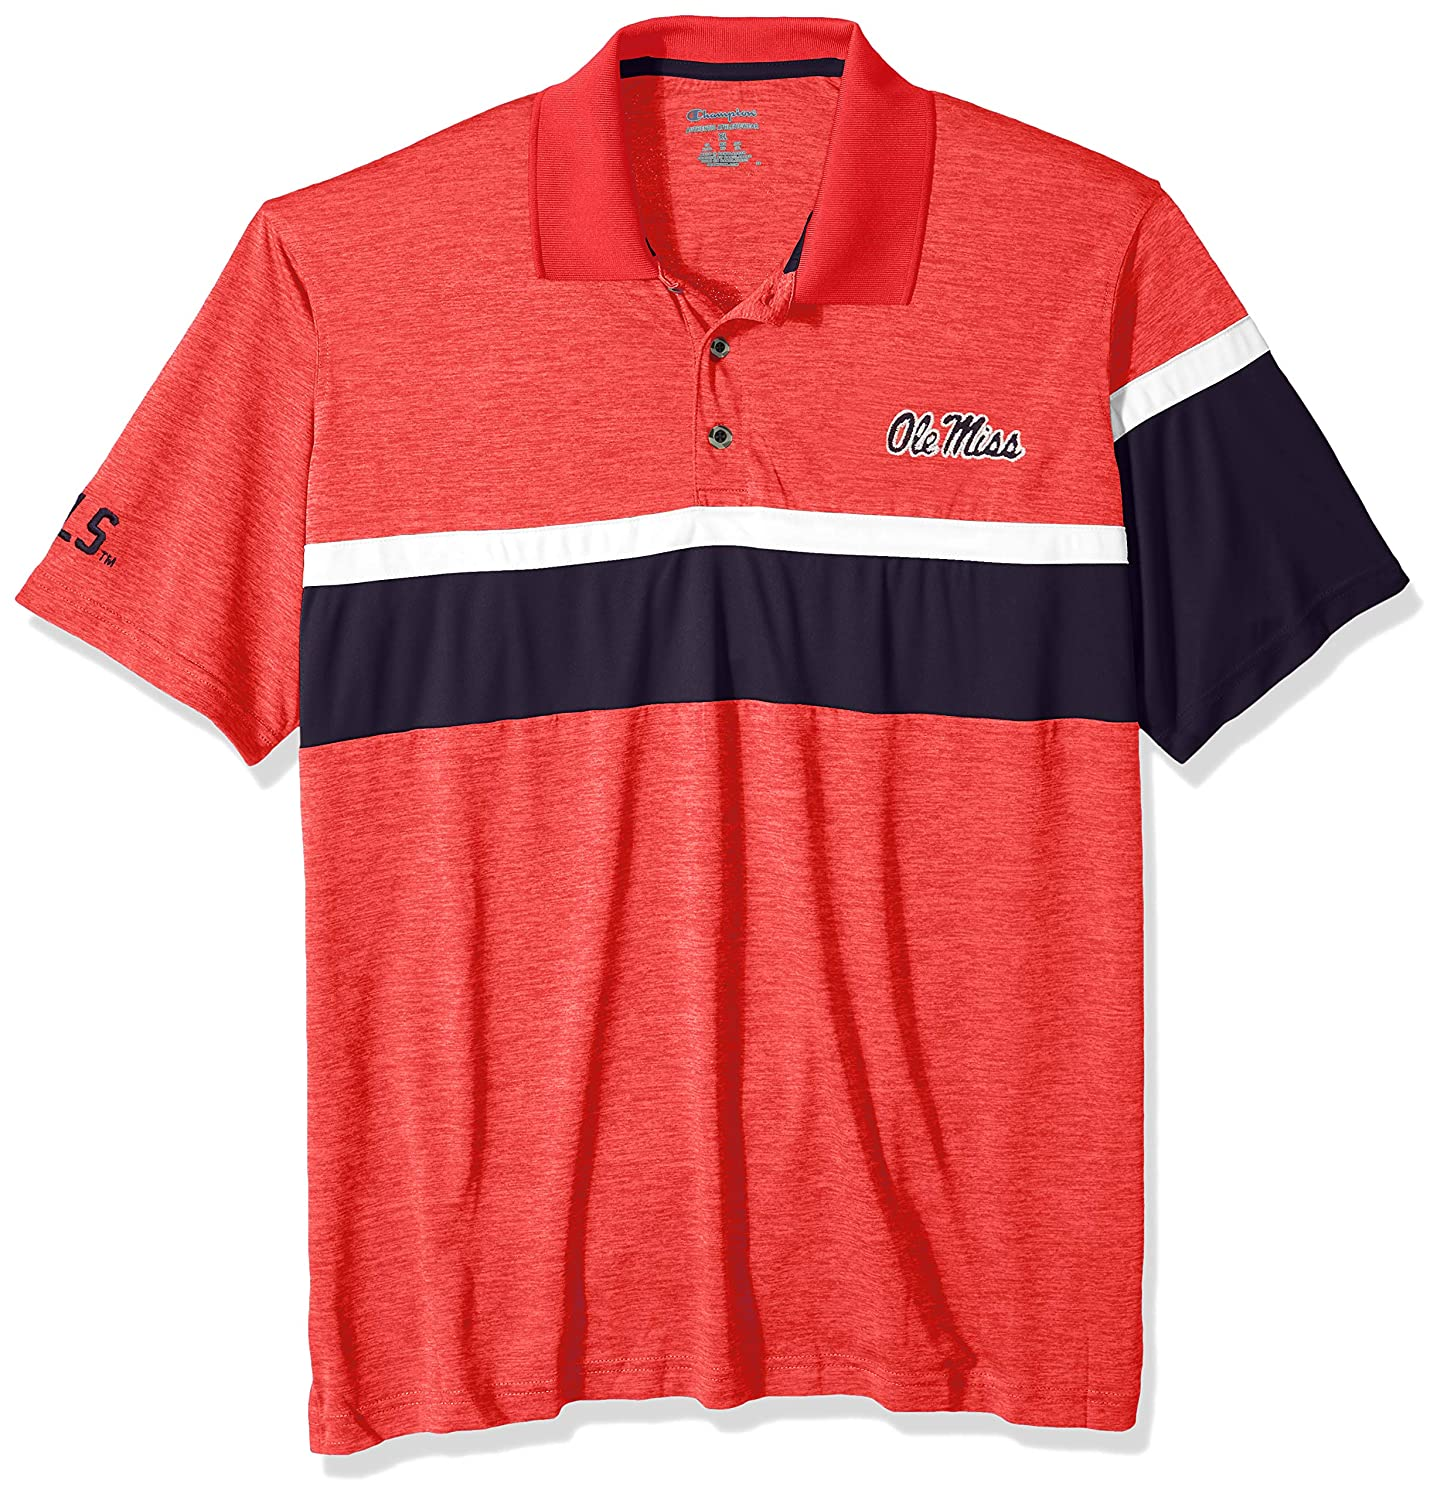 Athletic Red Small NCAA Ole Miss Rebels Mens NCAA Mens Short Sleeve Striped Polo Collared Teechampion NCAA Mens Short Sleeve Striped Polo Collared Tee